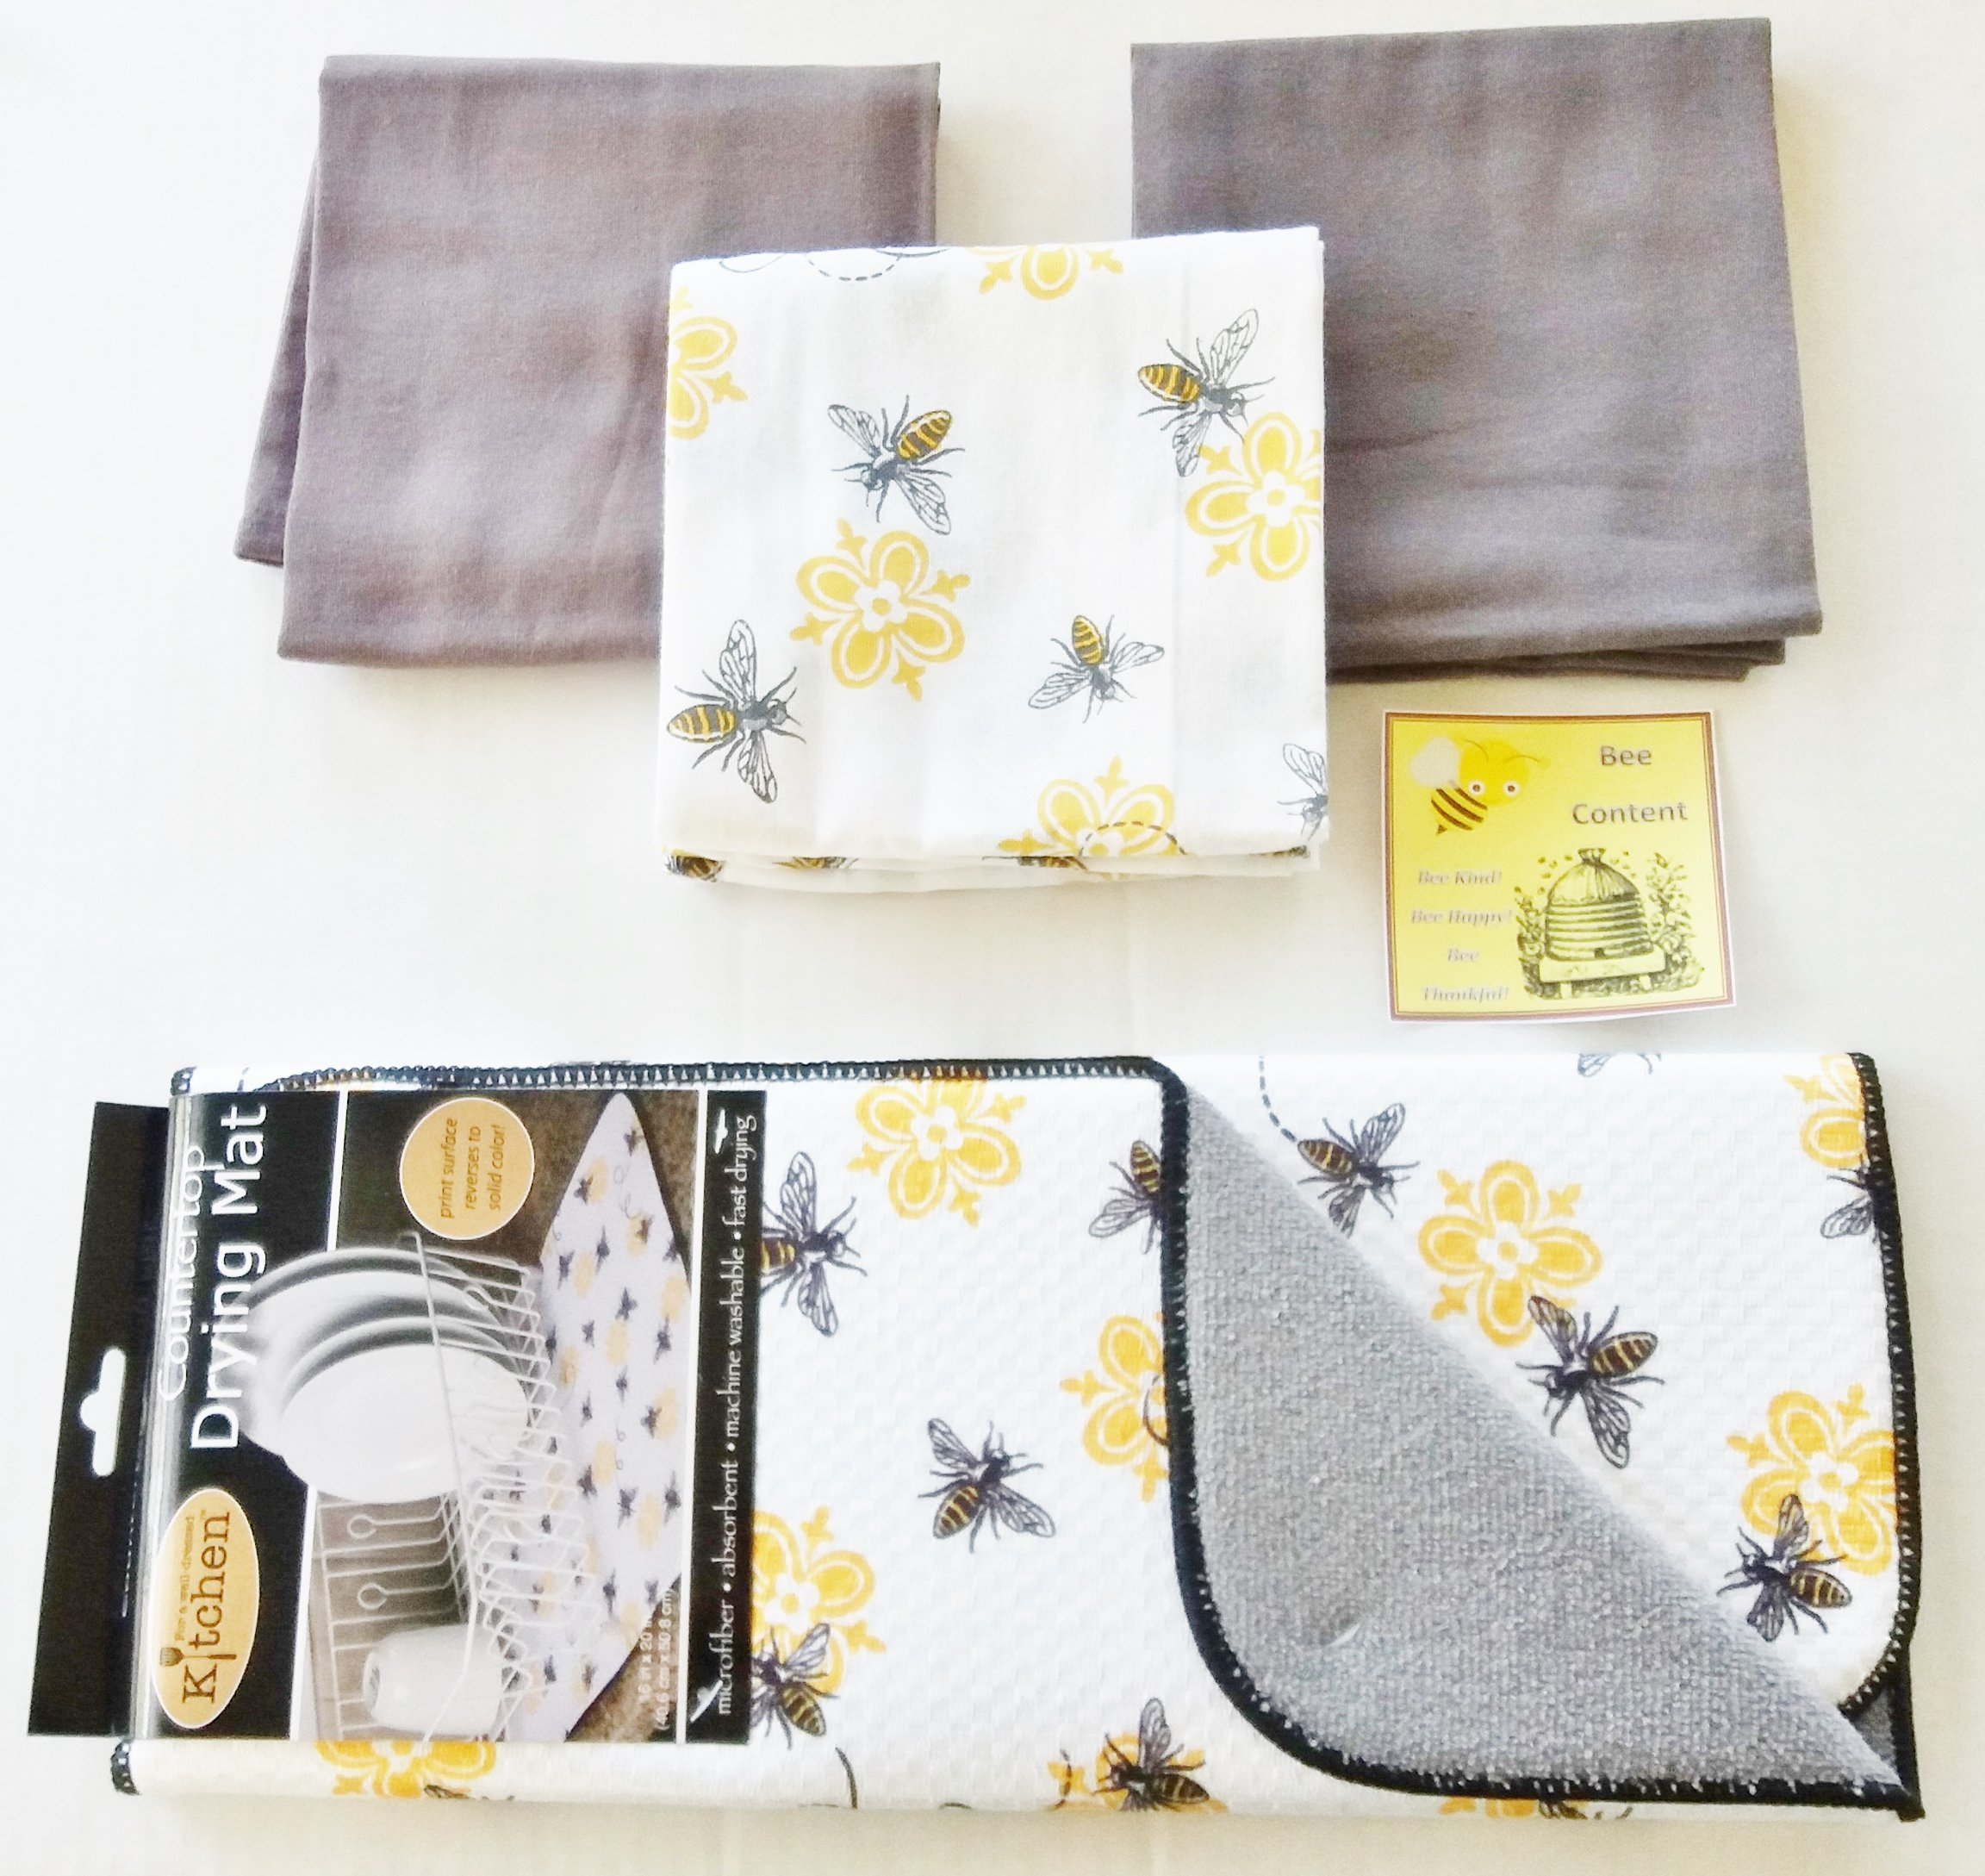 Bumble Bee 3-Piece Dish Towel and Dish Drying Mat (Queen Bee Print) and bonus magnet